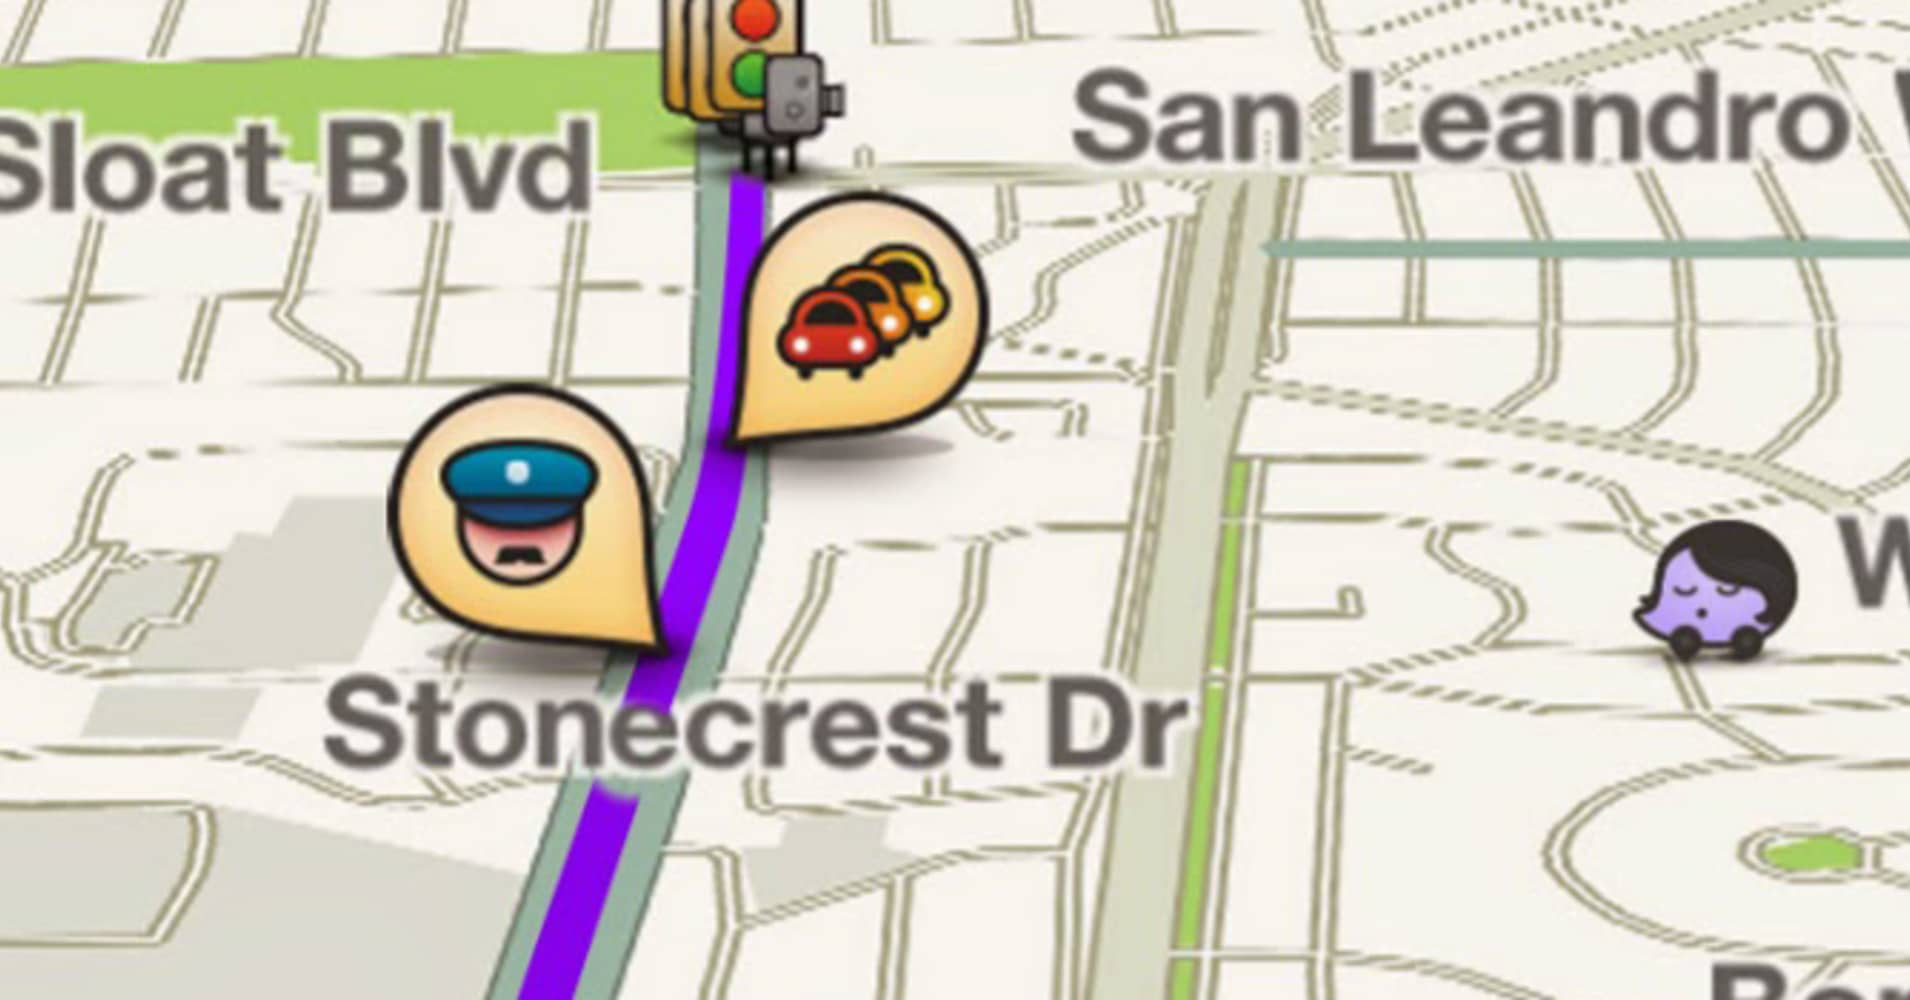 Cmon Sherriff Tell The Truth About Wazecommentary